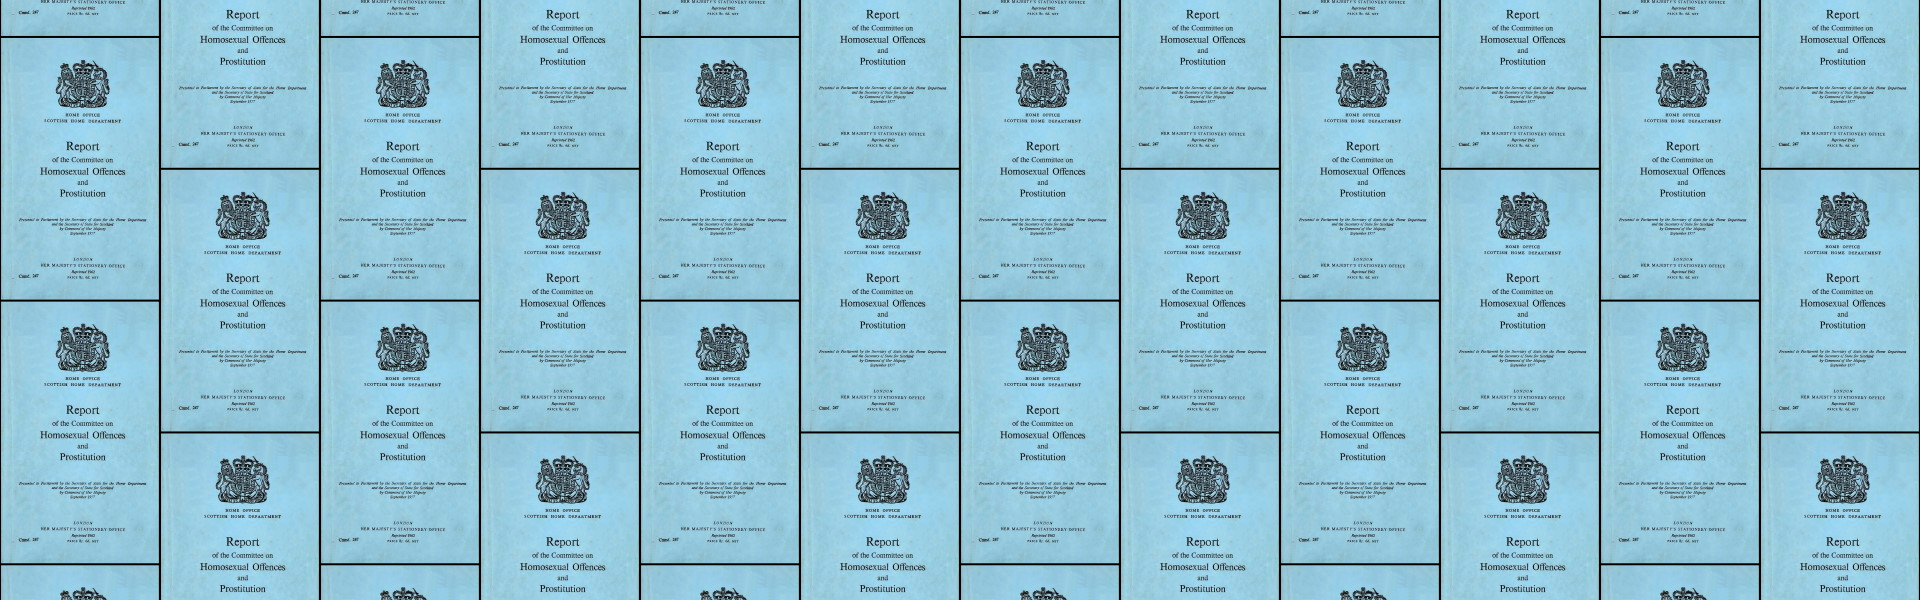 [Wolfenden Report] Report of the Committee on Homosexual Offences and Prostitution / Committee on Homosexual Offences and Prostitution, Great Britain (London, United Kingdom : Her Majesty's Stationery Office, 1968)